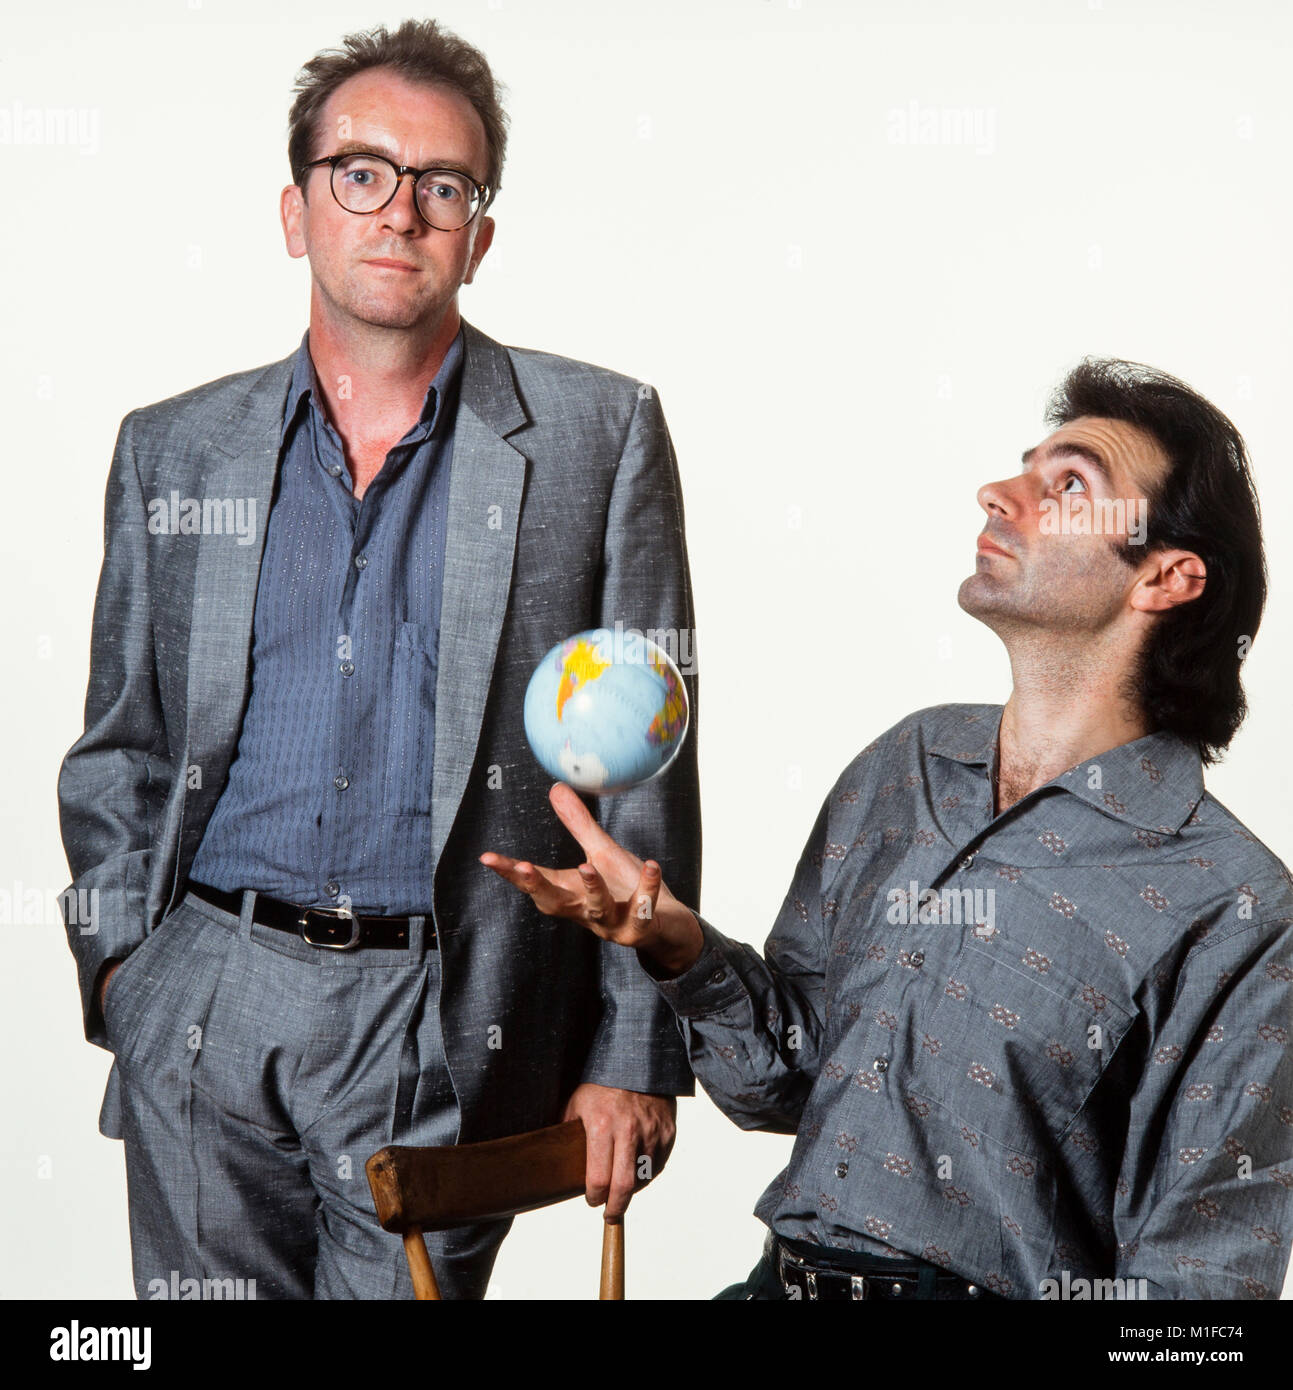 Ben Mandelson, (Hijaz Mustapha), 3 mustaphas 3, throws globe in the air accompanied by another band member(Name - Stock Image